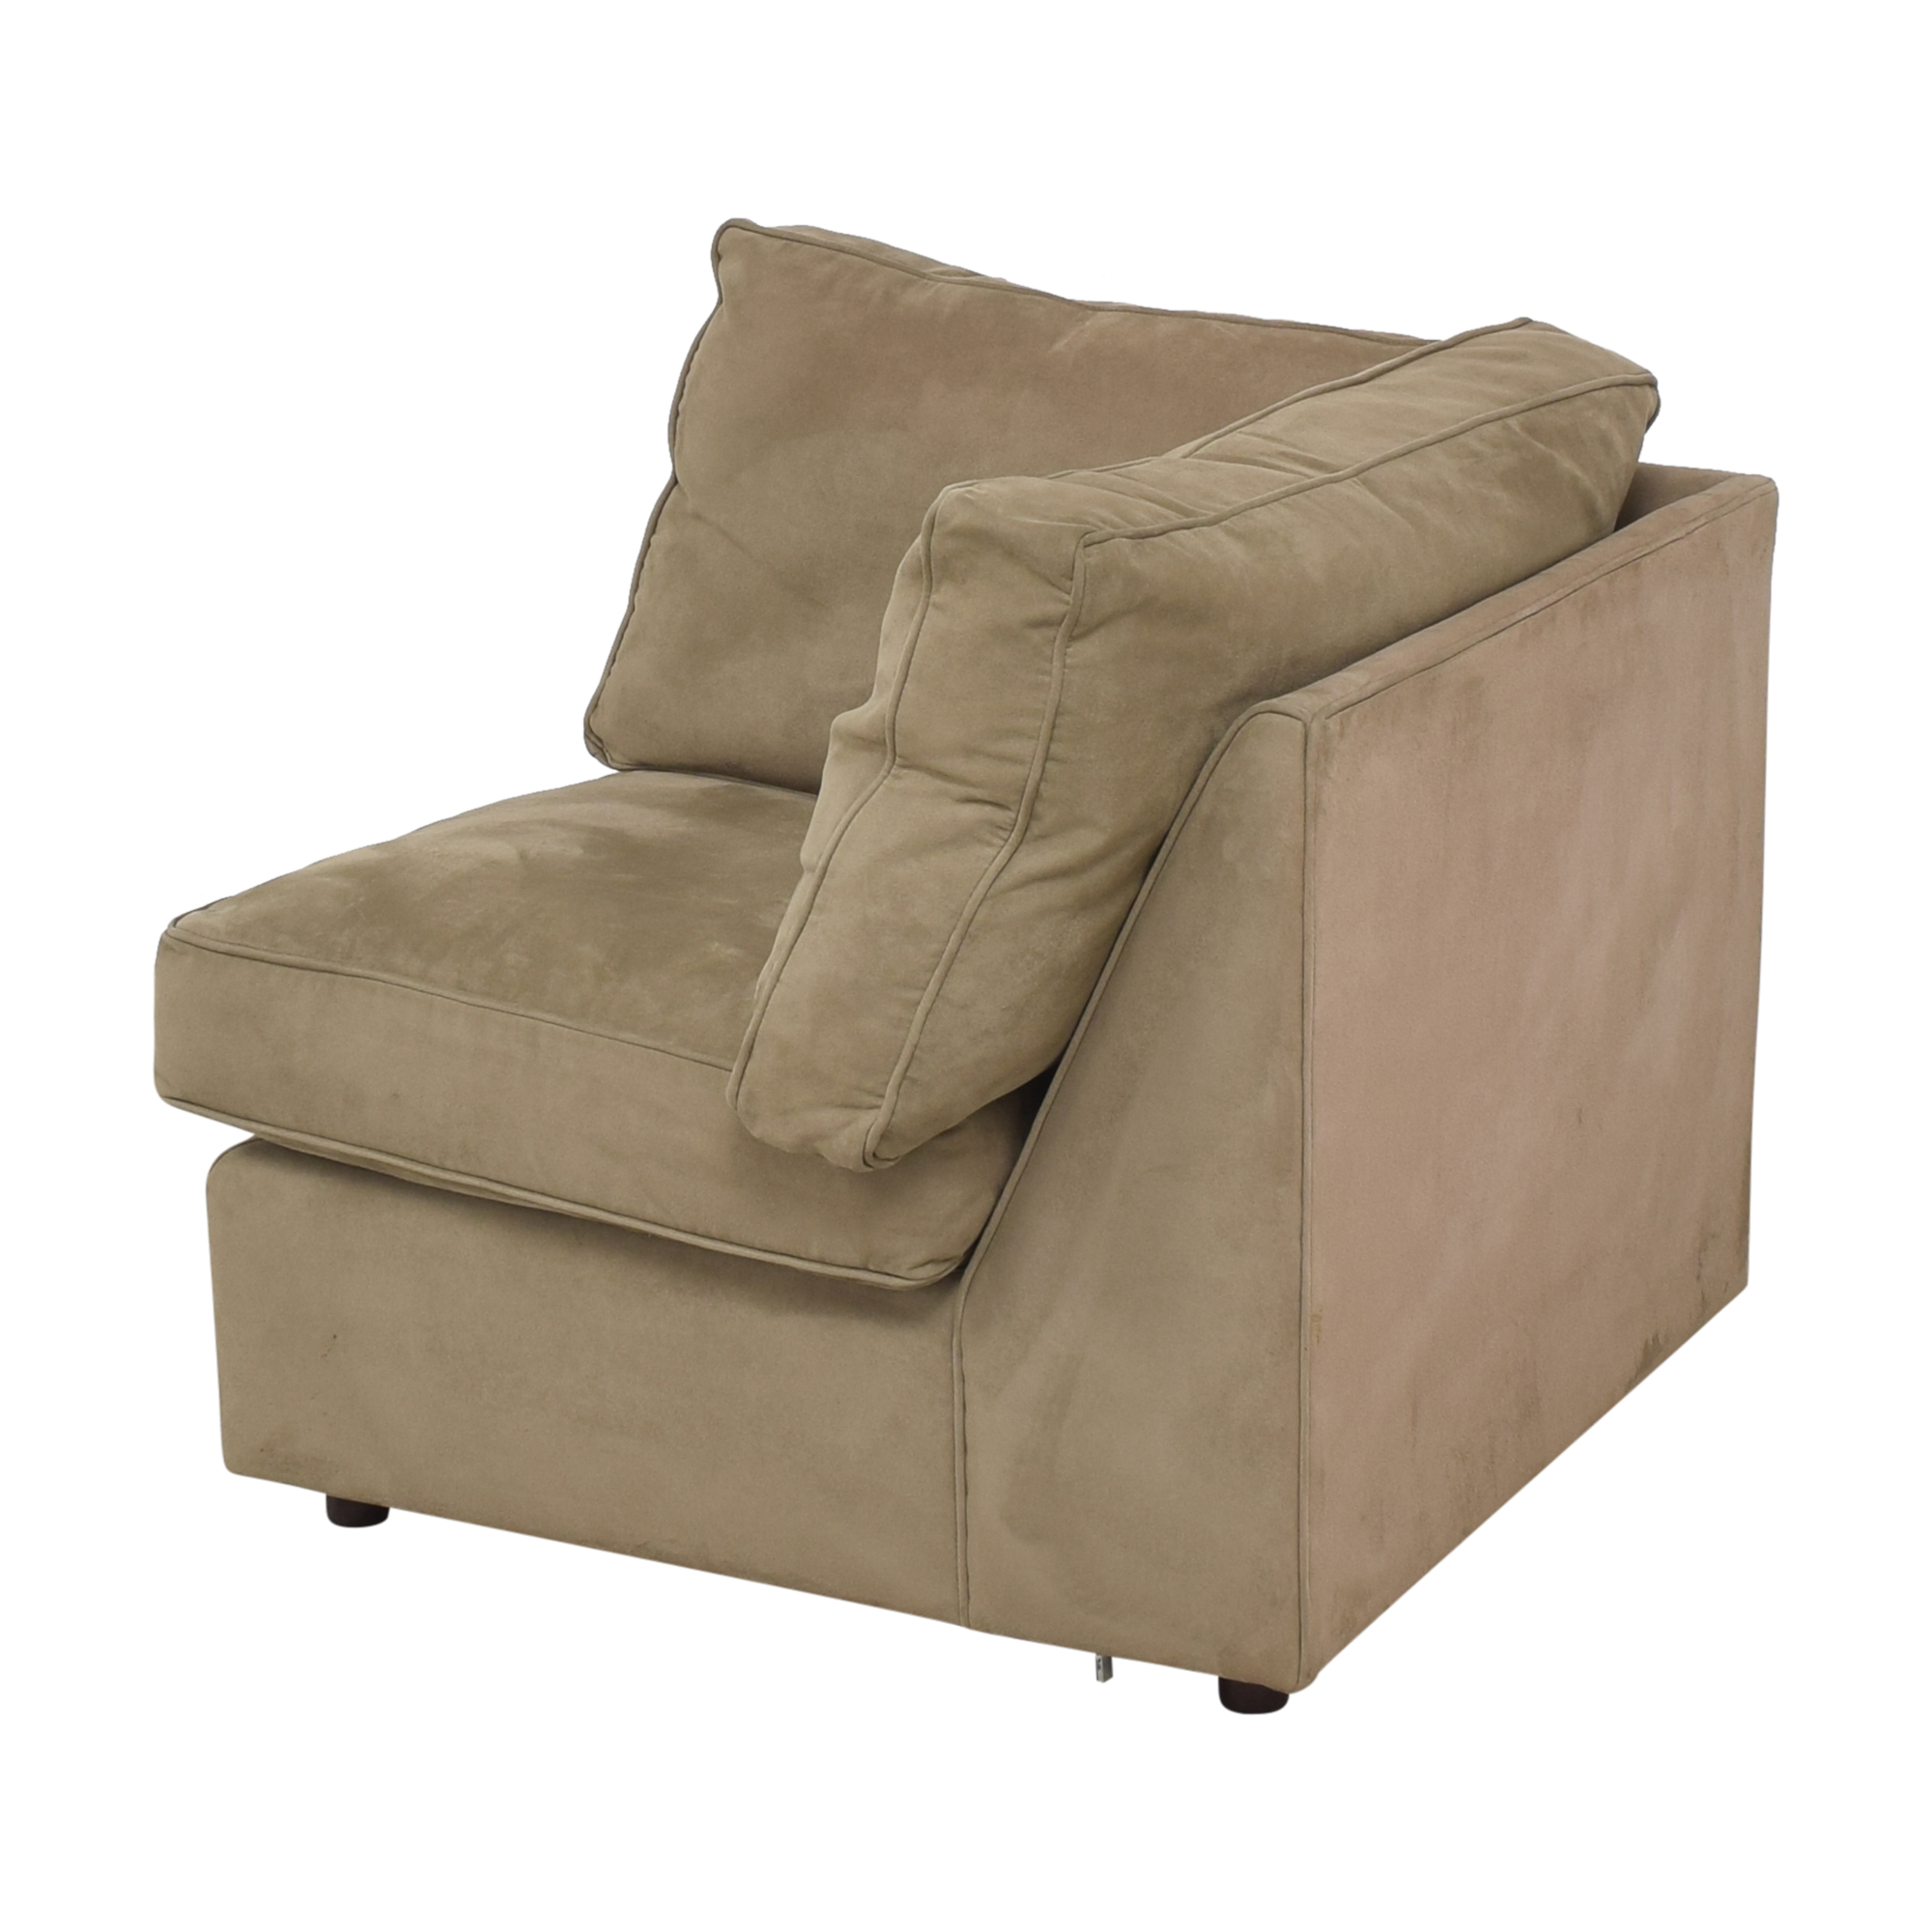 buy Room & Board Room & Board Corner Chair with Ottoman online